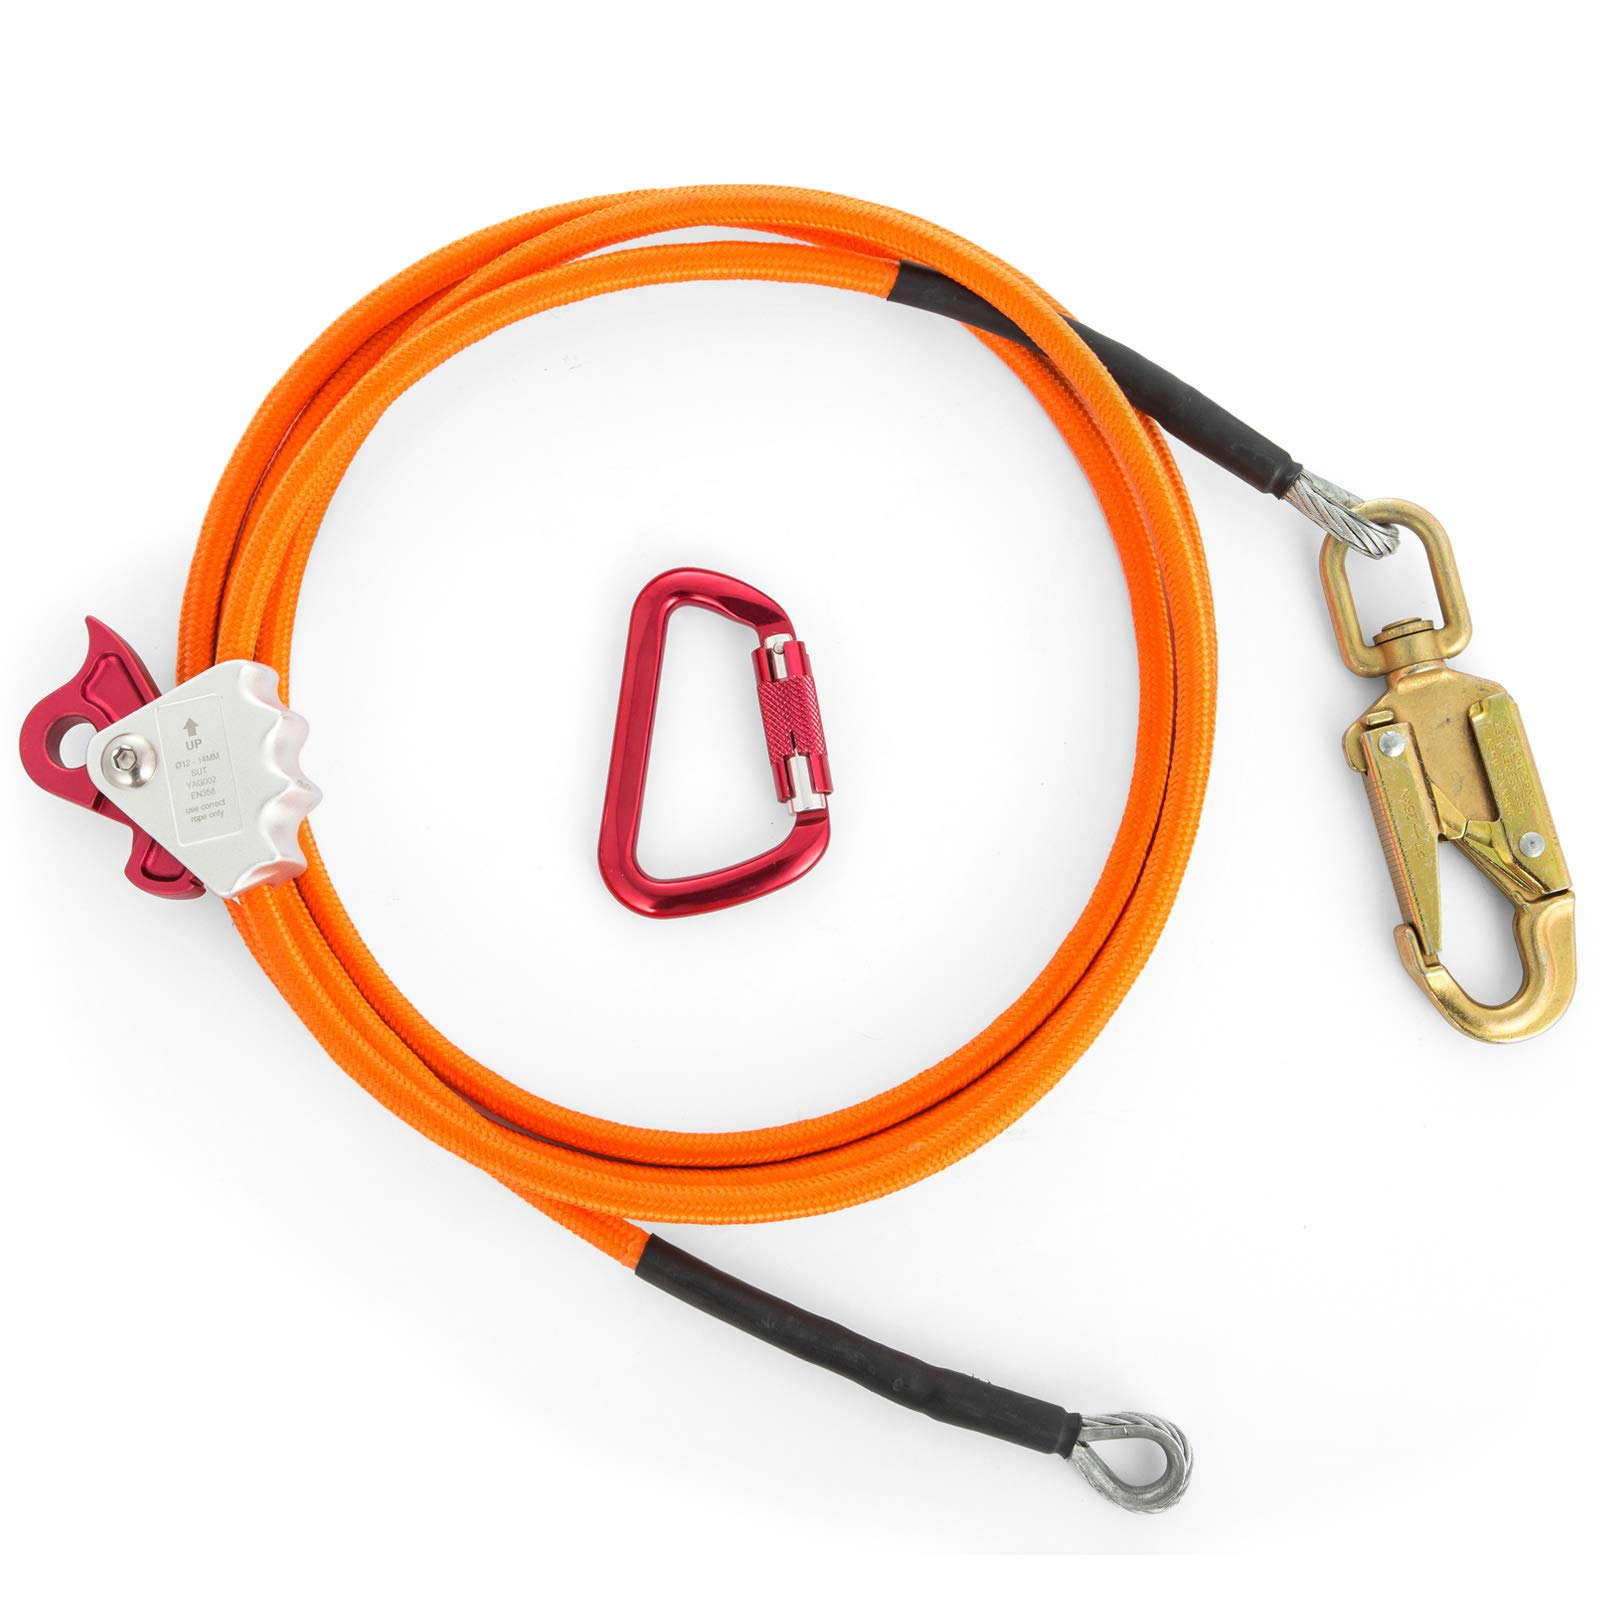 Happybuy Steel Wire Core Flip Line Kit 1/2'' X 8' Wire Core Flipline with Triple Lock Carabiner and Steel Swivel Snap Wire Core Flipline System for Arborists Climbers Tree Climbers (1/2'' X 8') by Happybuy (Image #5)